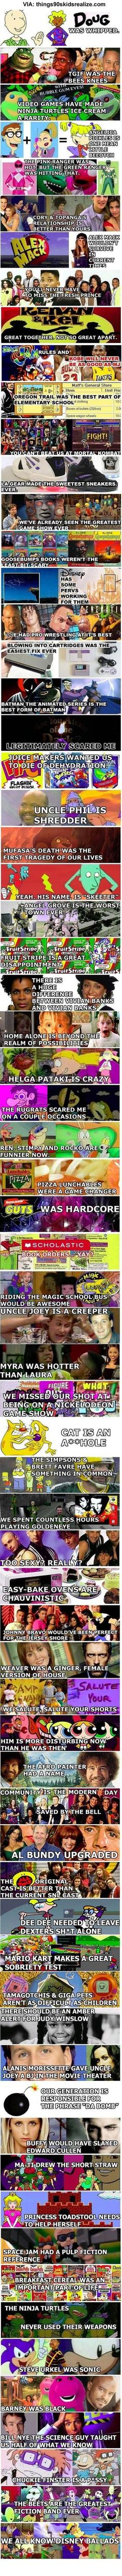 How great was it to be a 90s kid?